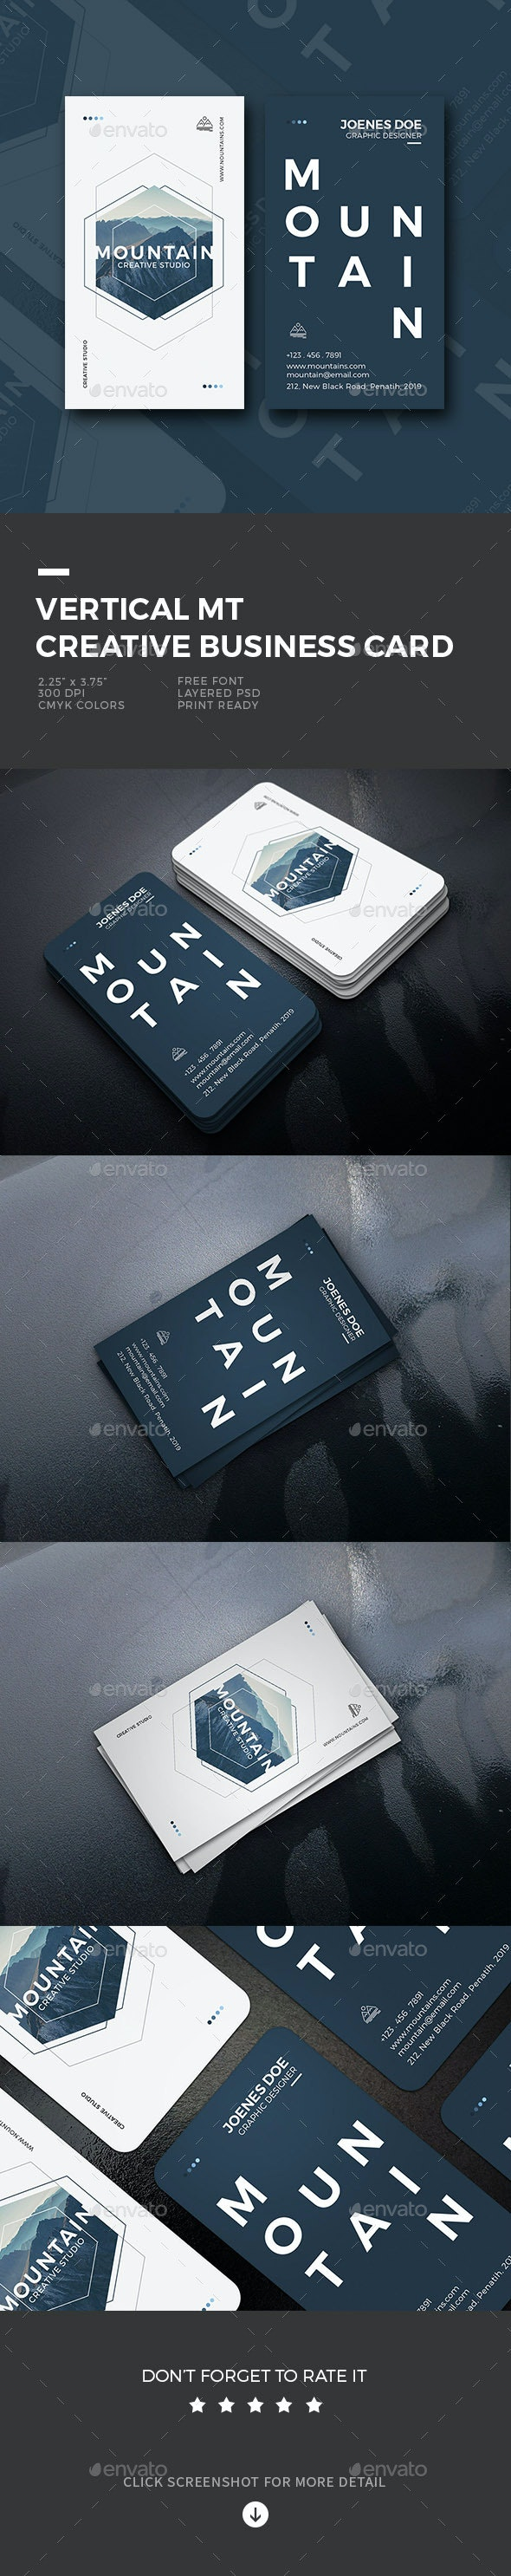 Vertical MT Creative Business Card - Business Cards Print Templates